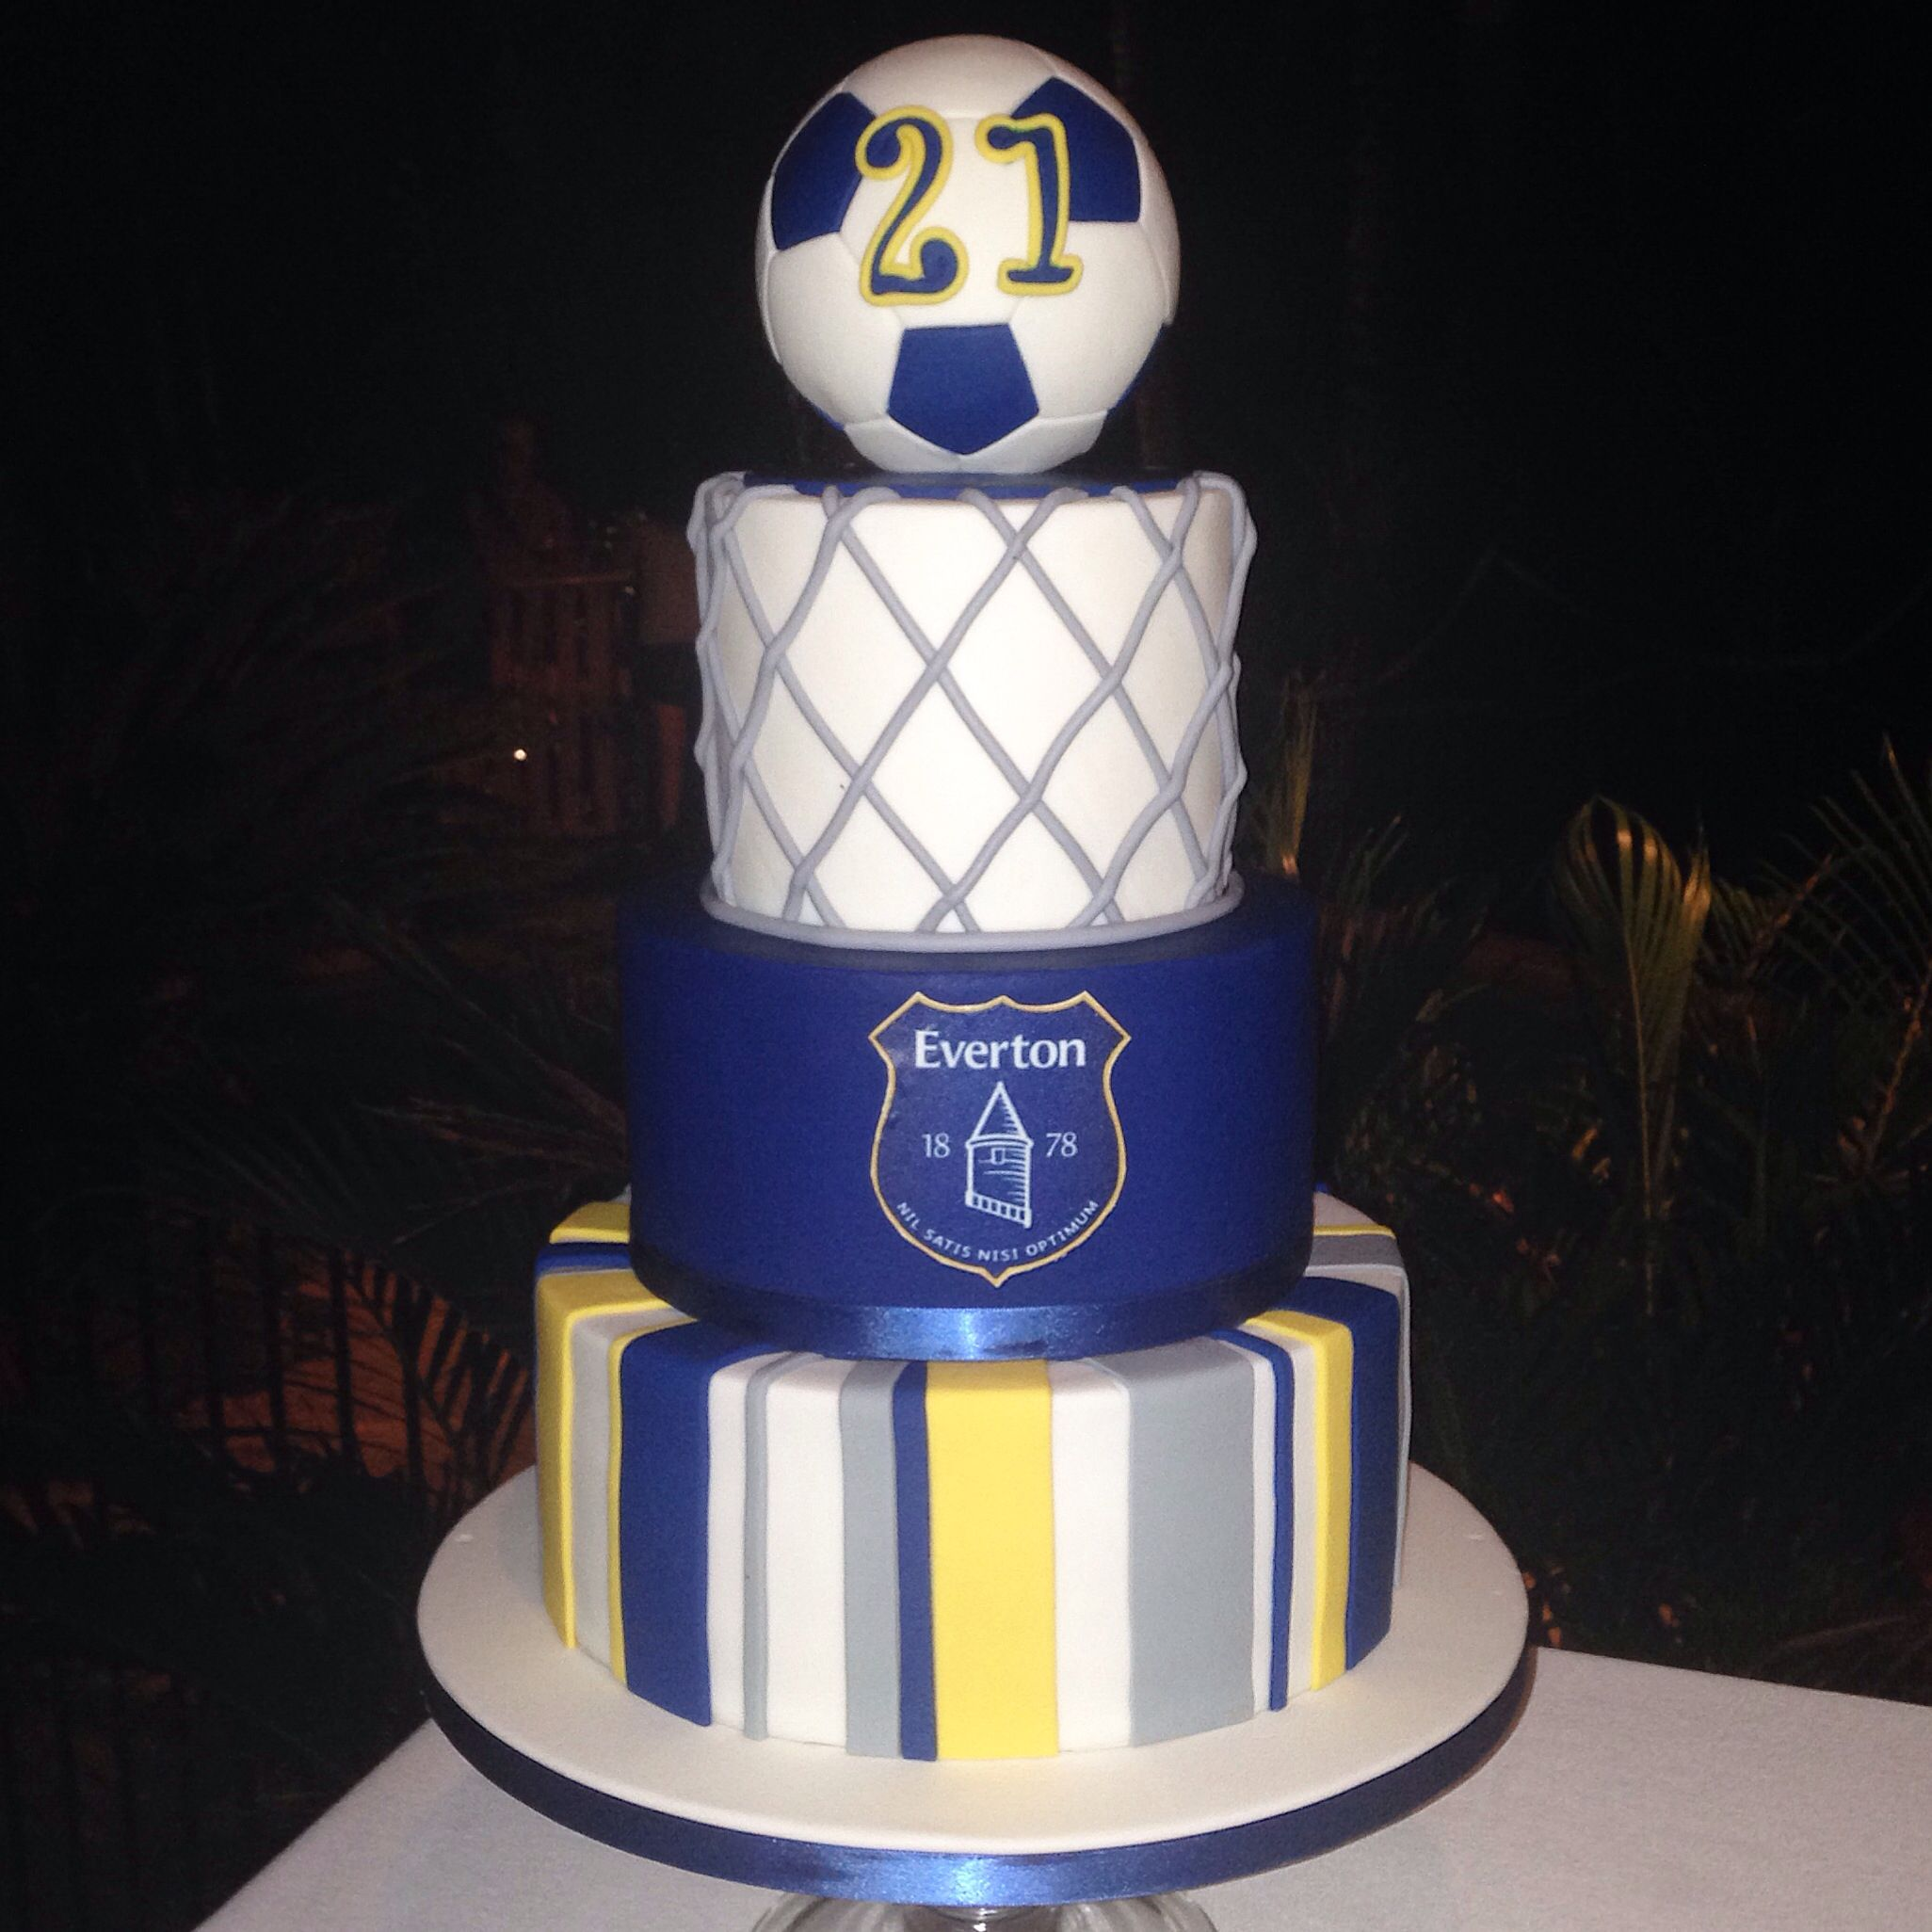 Birthday cake for mad Everton Football Club supporter To view